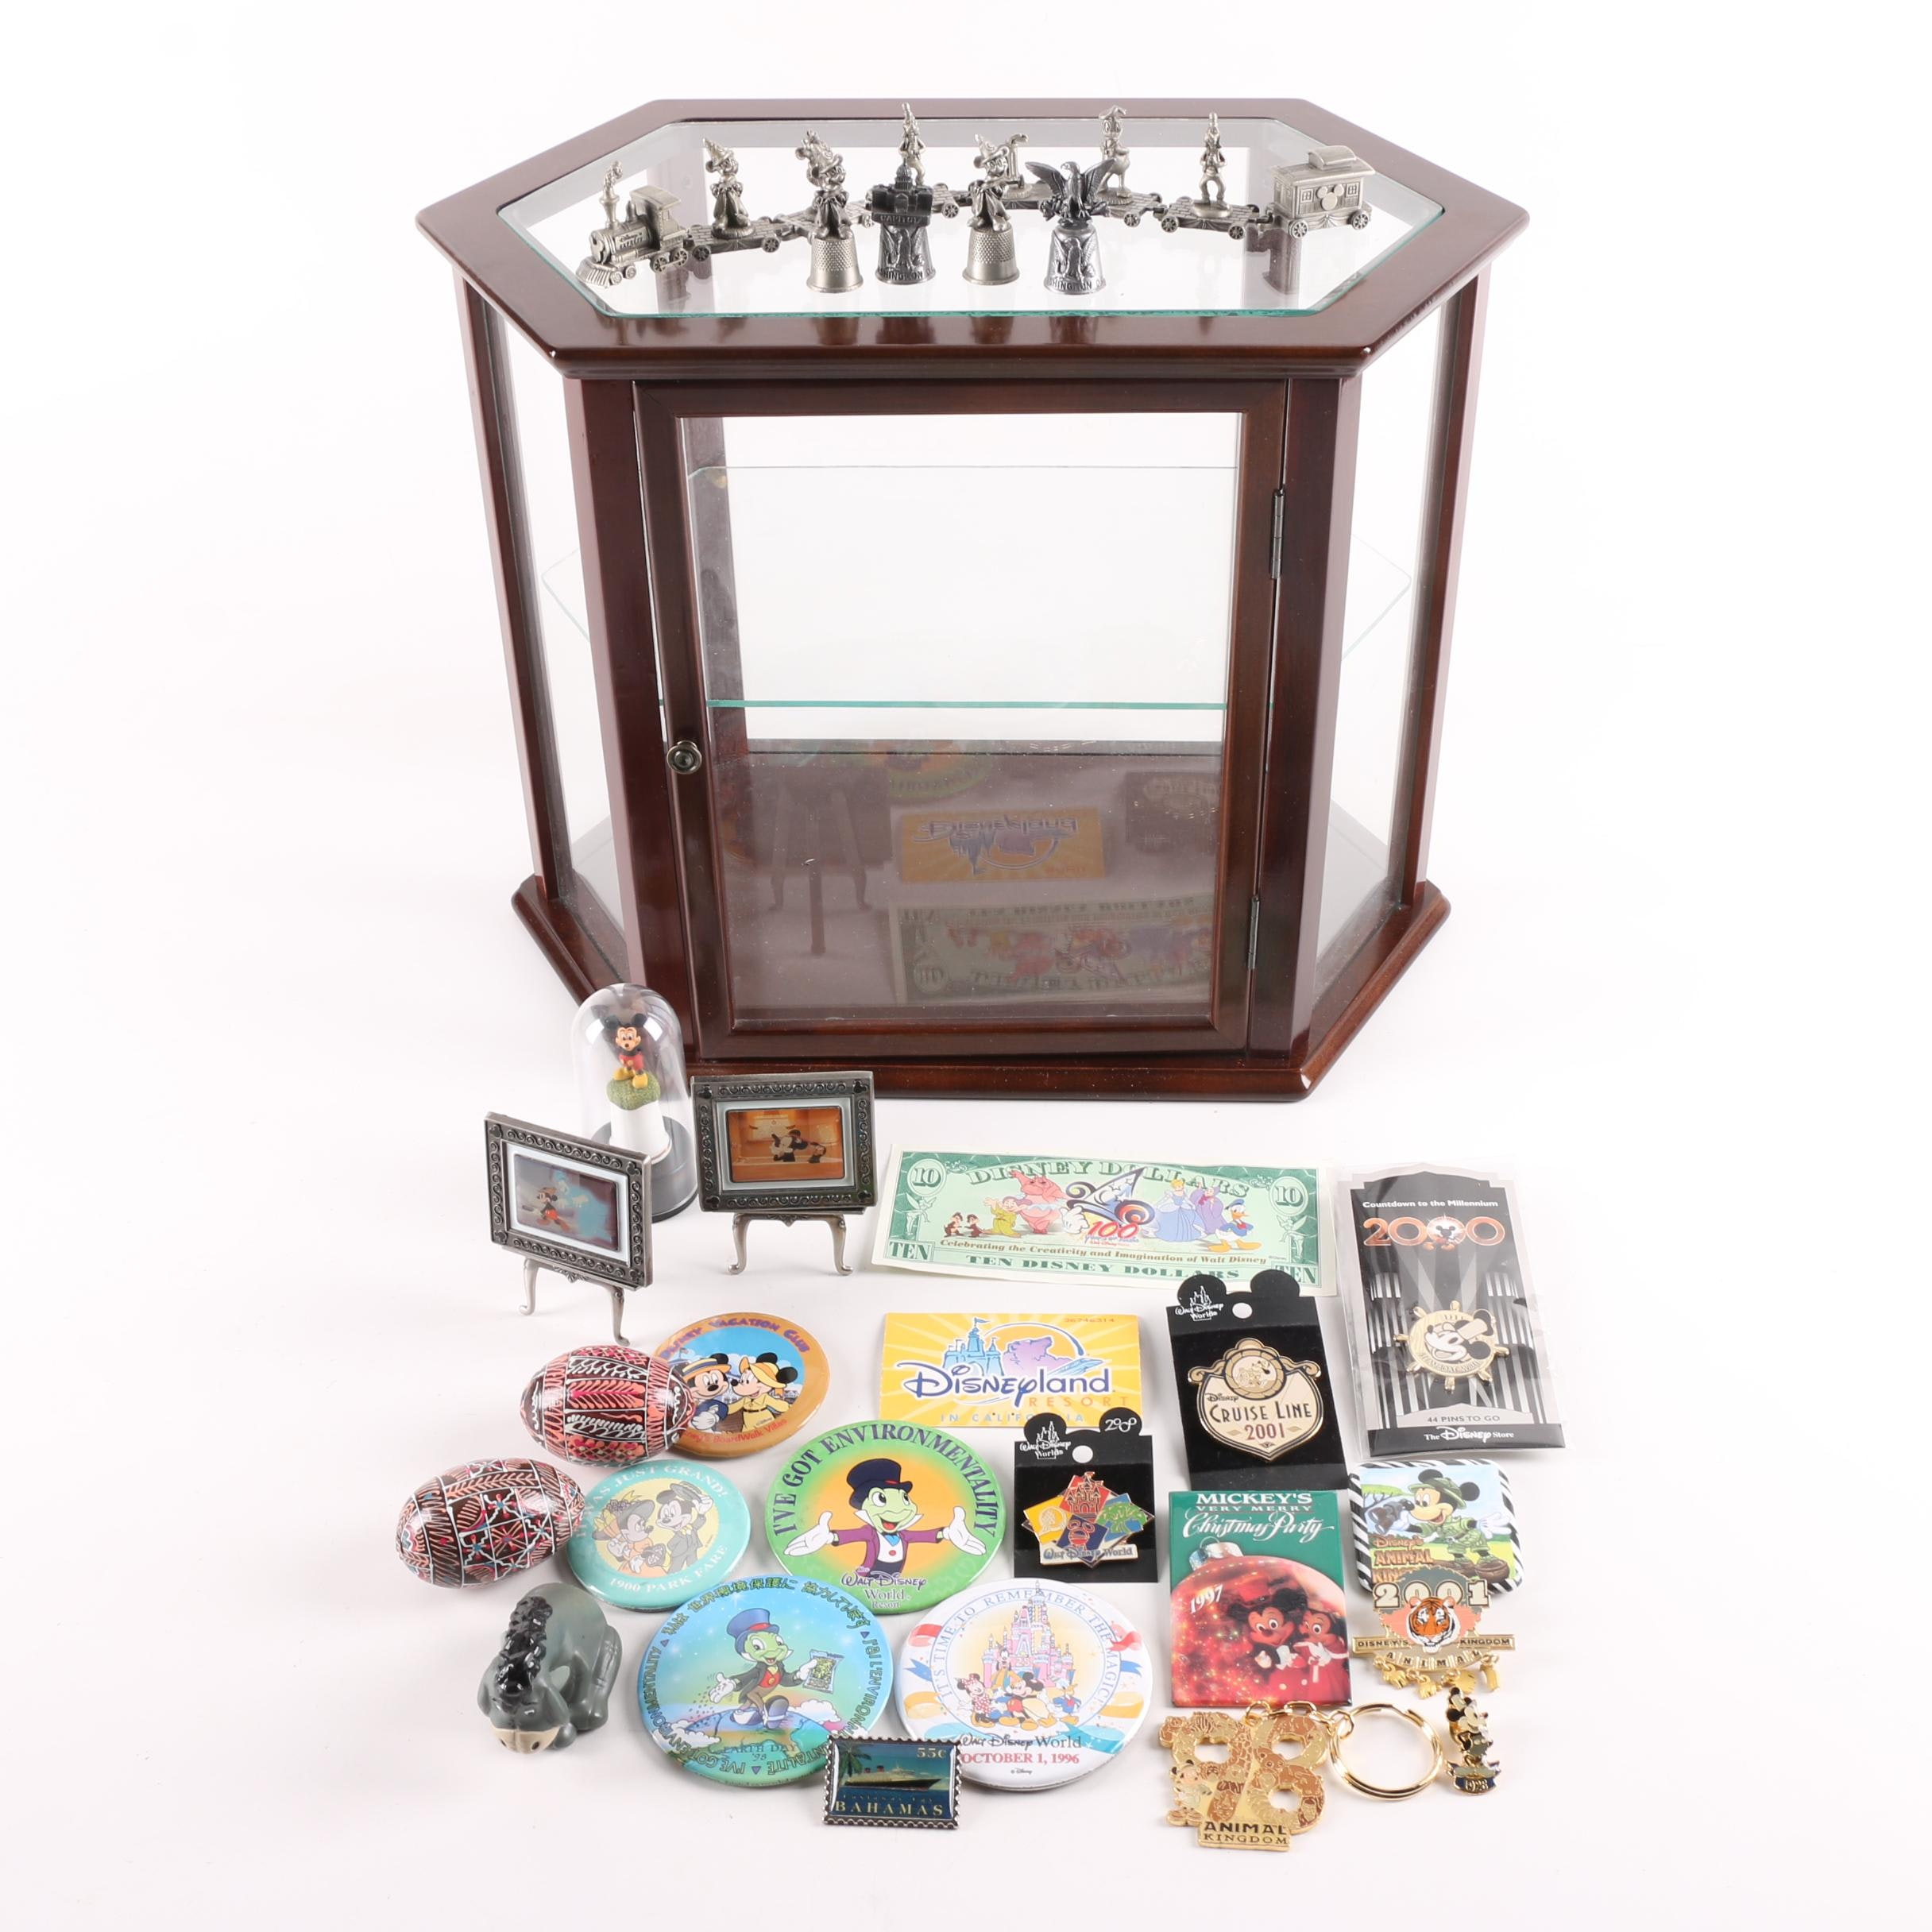 Display Cabinet with Disney and Other Collectibles